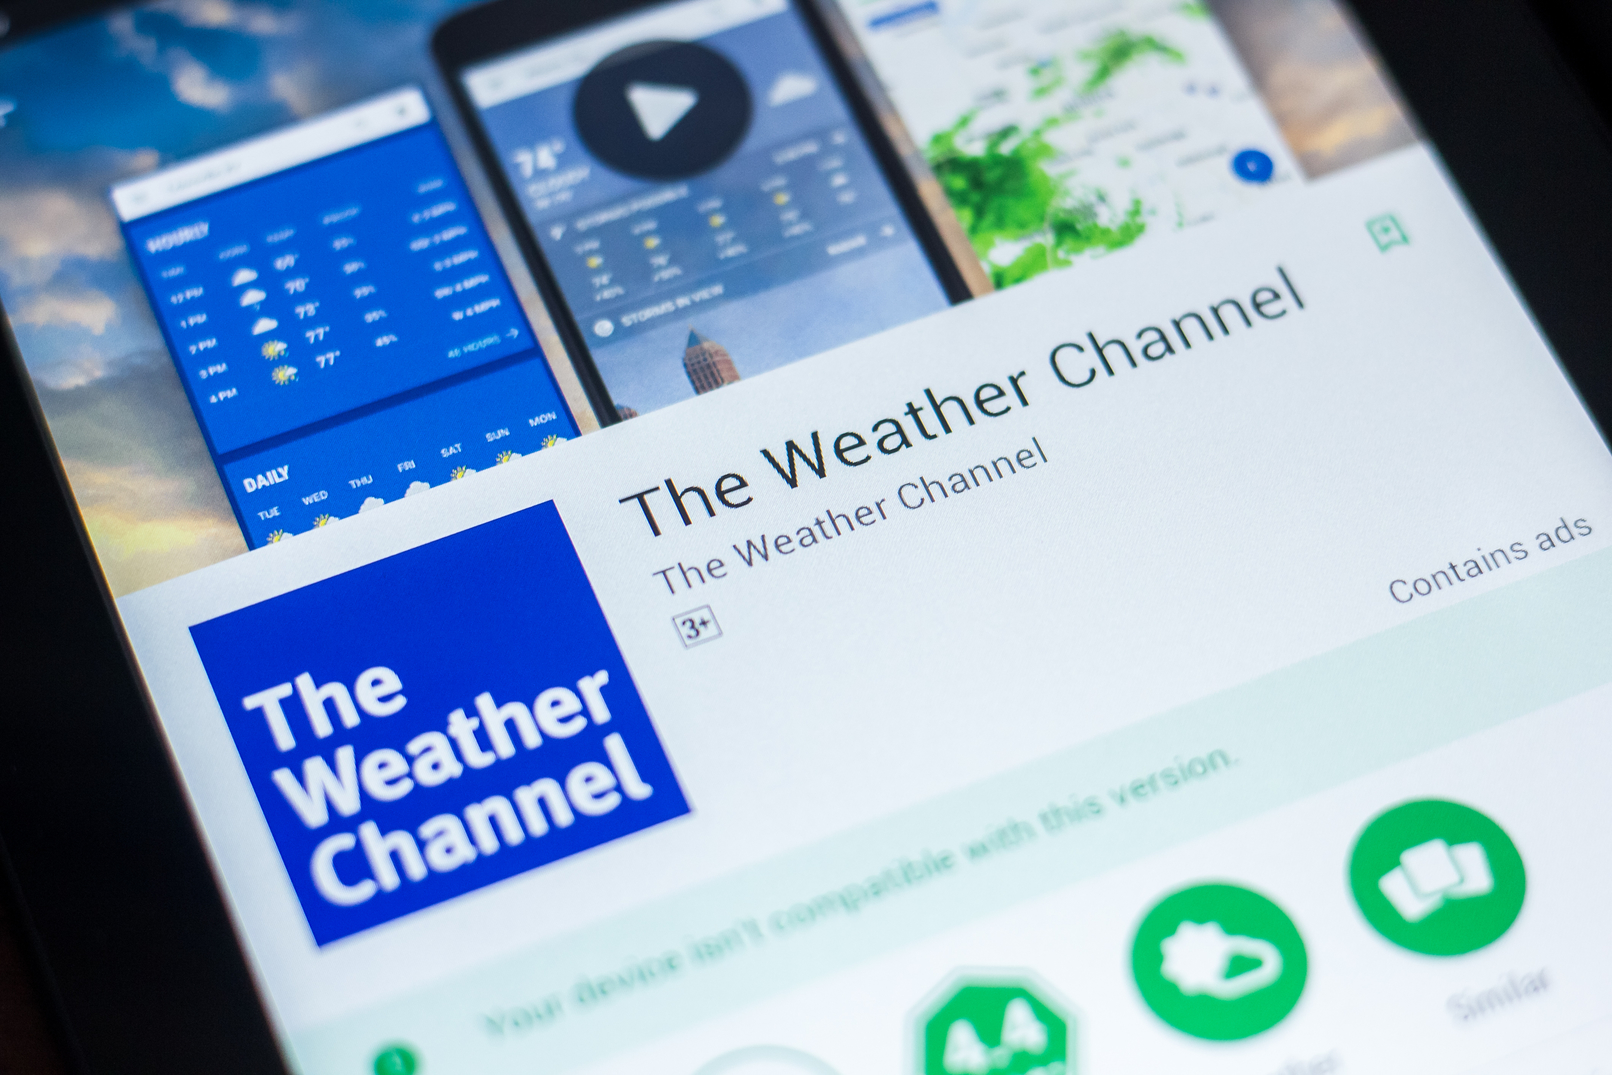 City of Los Angeles Files Suit Against the Weather Channel Over Data Mining